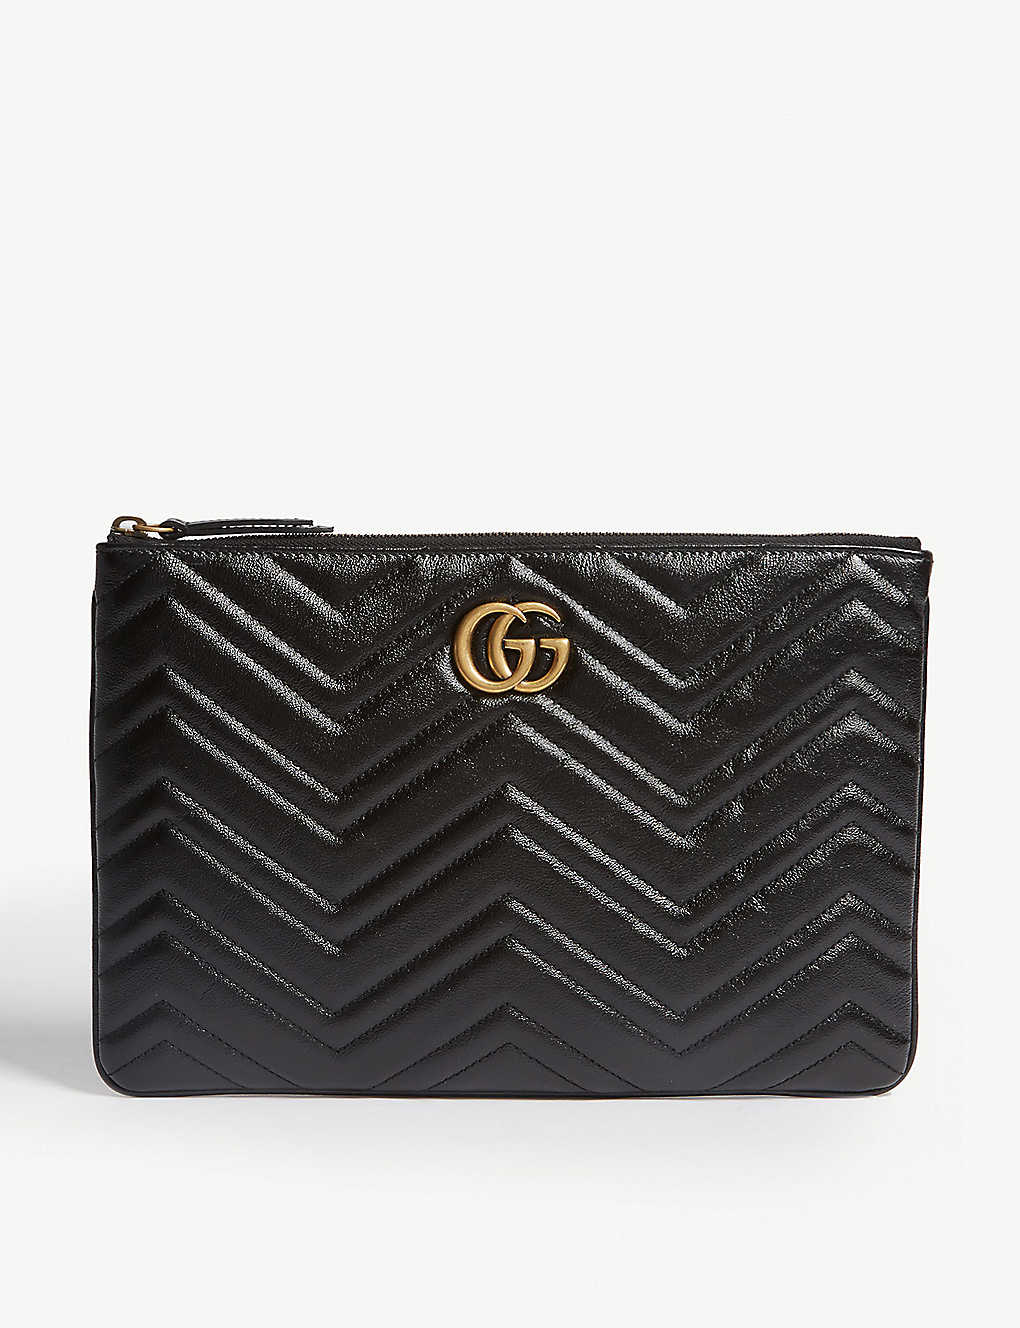 382a1e05e3a GG Marmont quilted leather pouch - Black ...